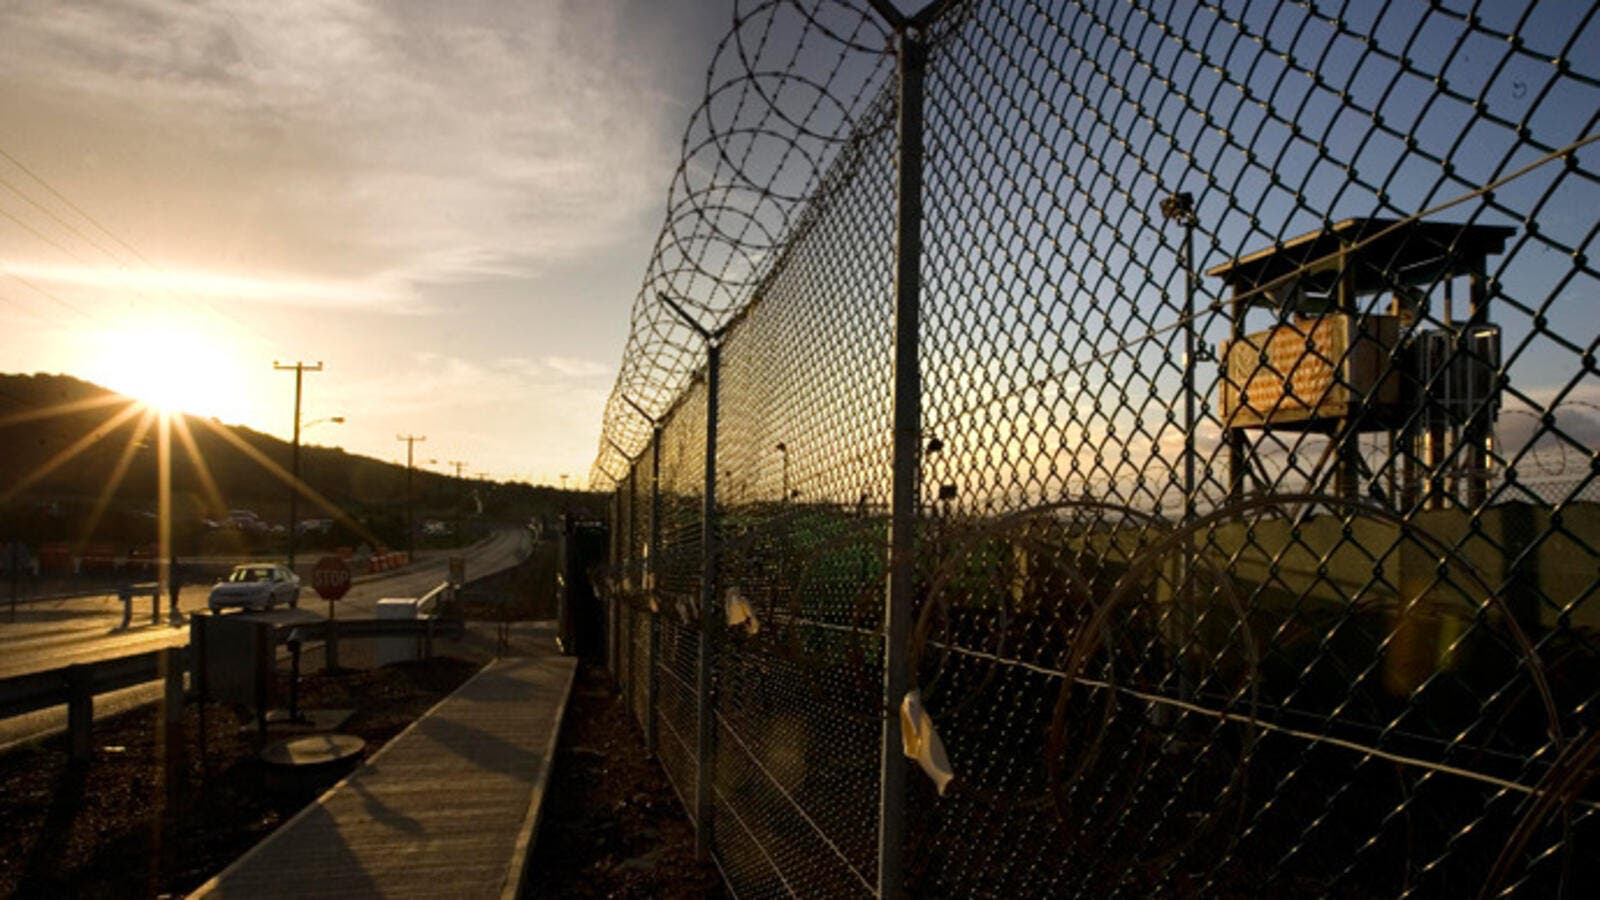 The Guantanamo Bay detention facility holds 132 remaining detainees. (AFP/File)